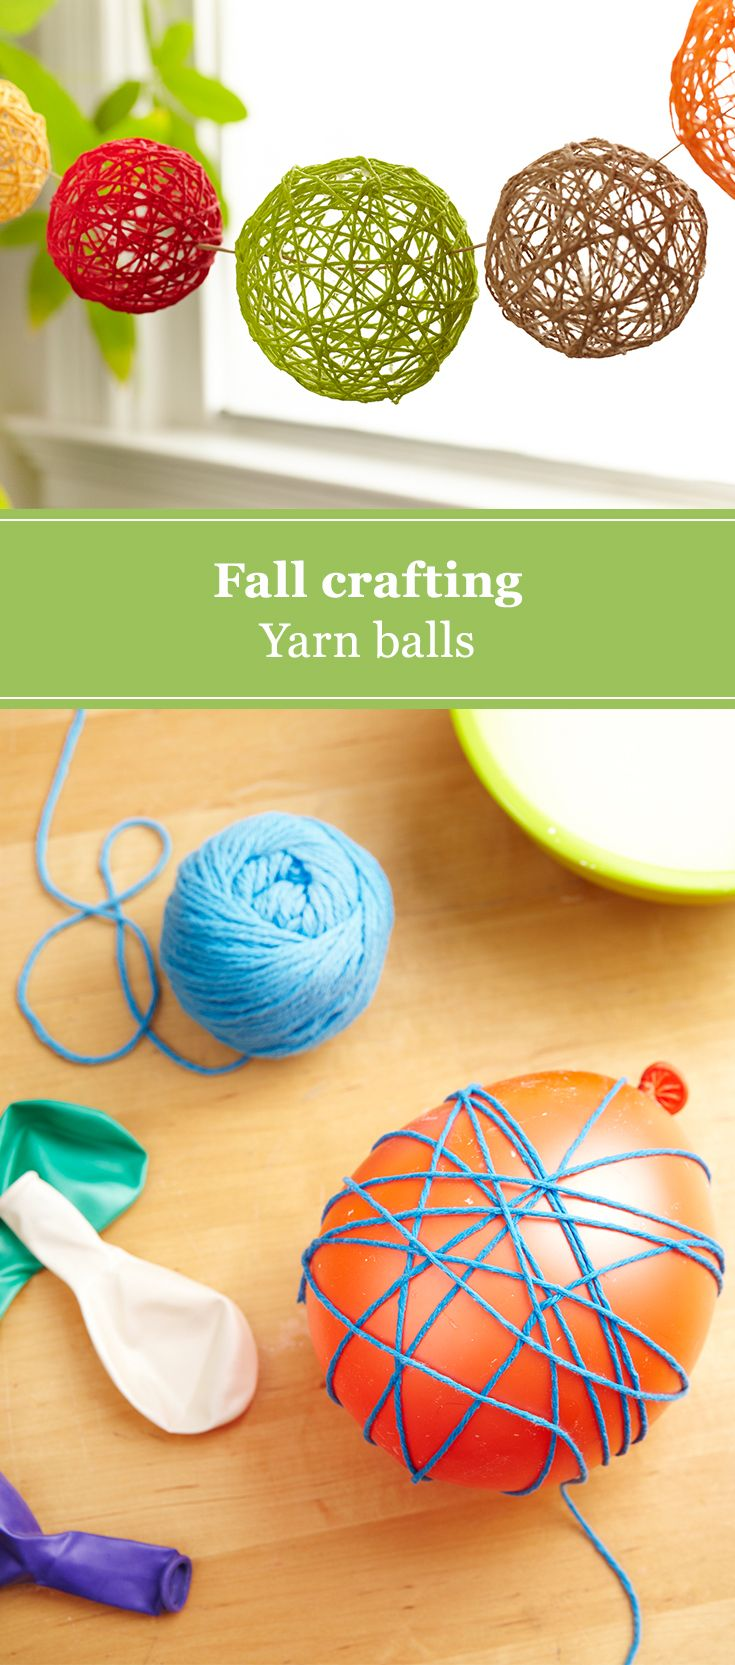 Diy Yarn Balls Diy Holiday Ideas Easy Yarn Crafts Diy Crafts To